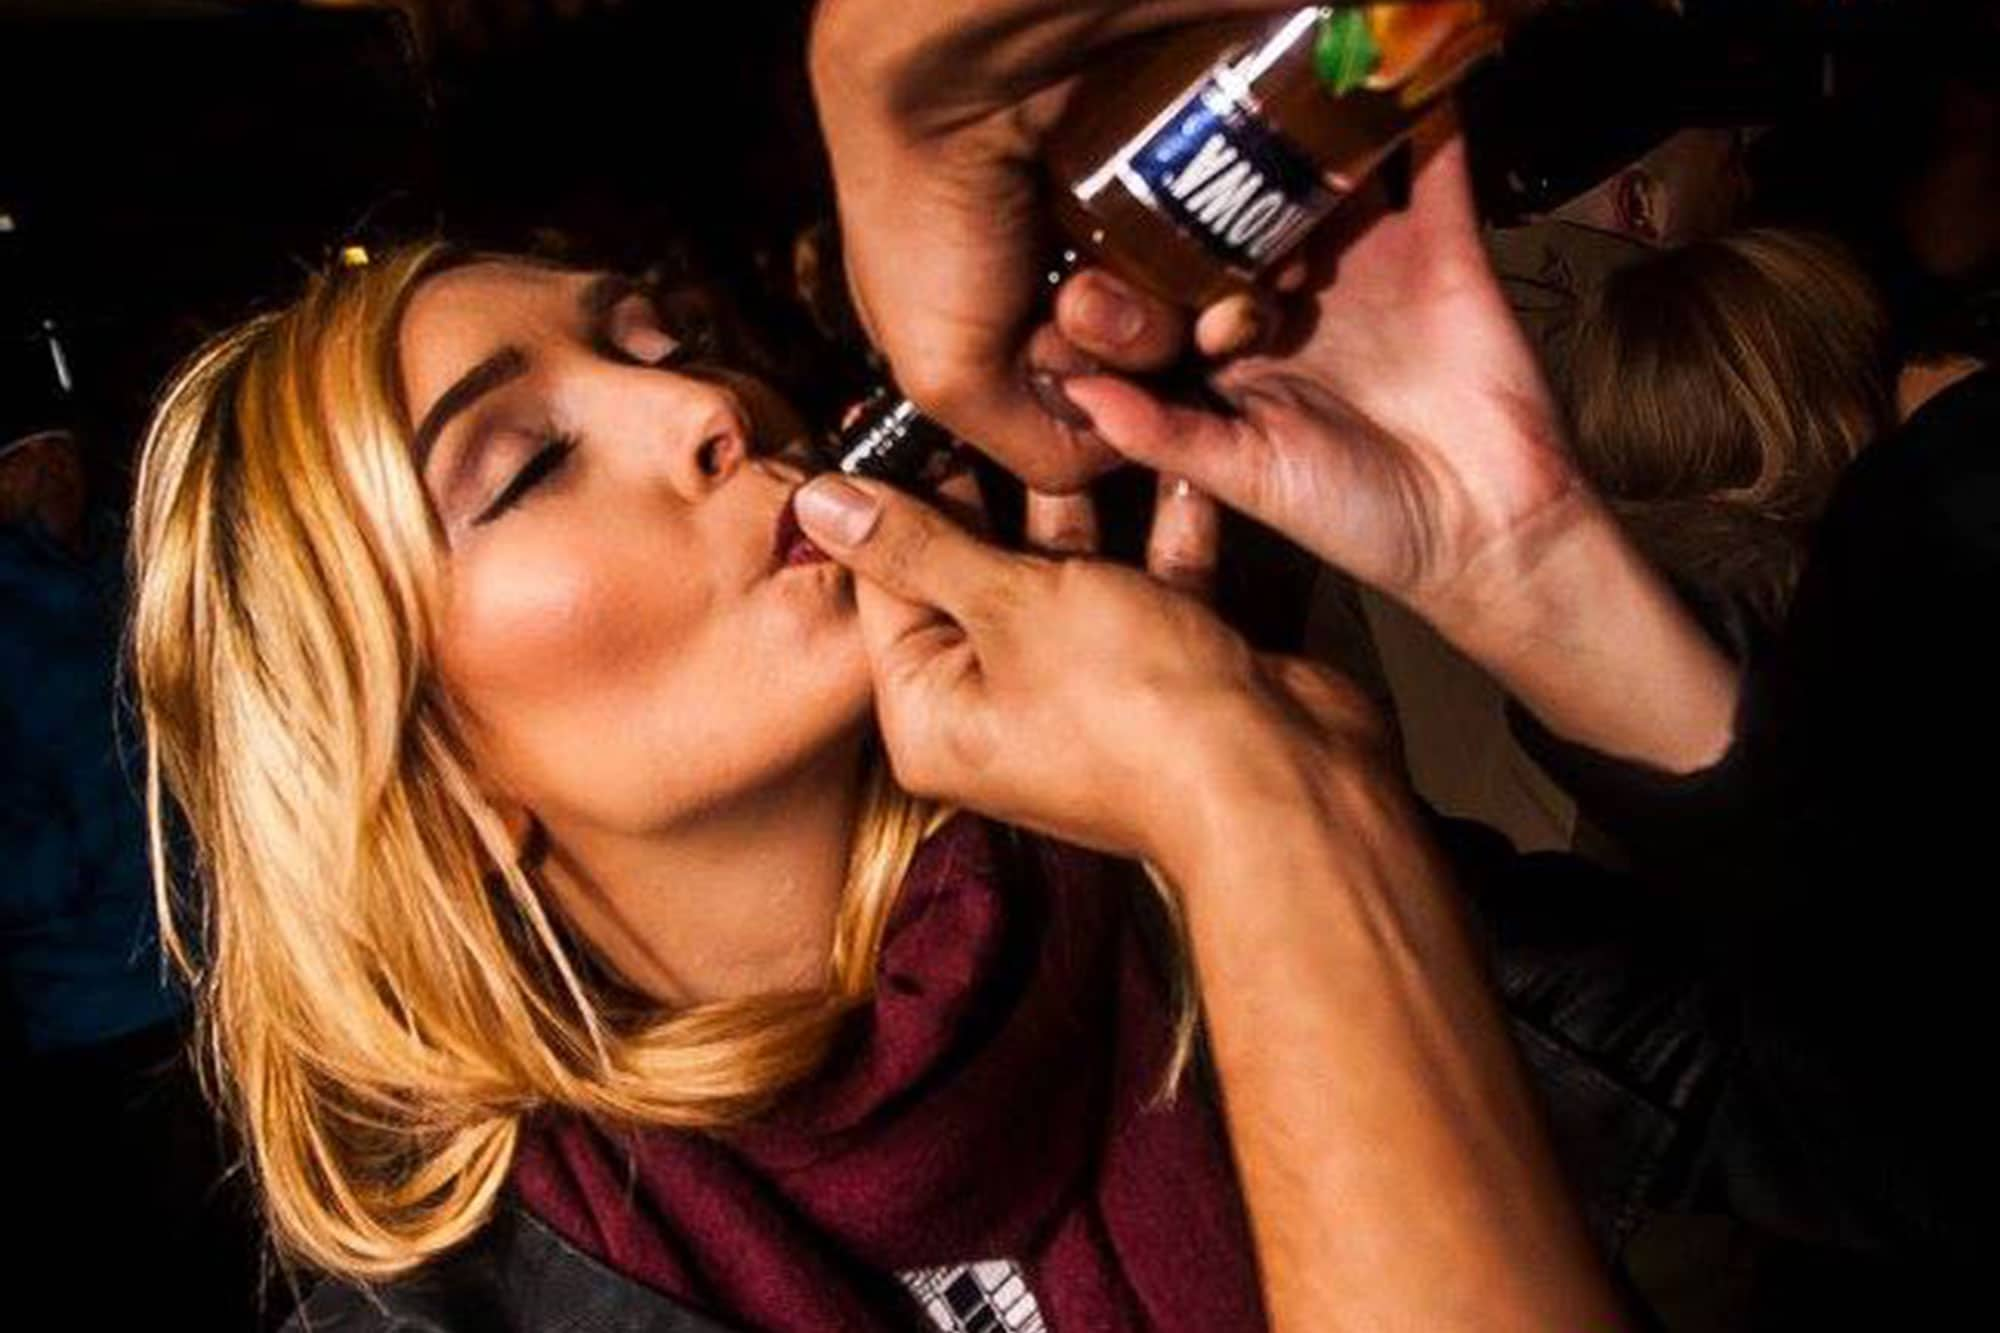 Yummy shots for girls who join our pub crawl in krakow